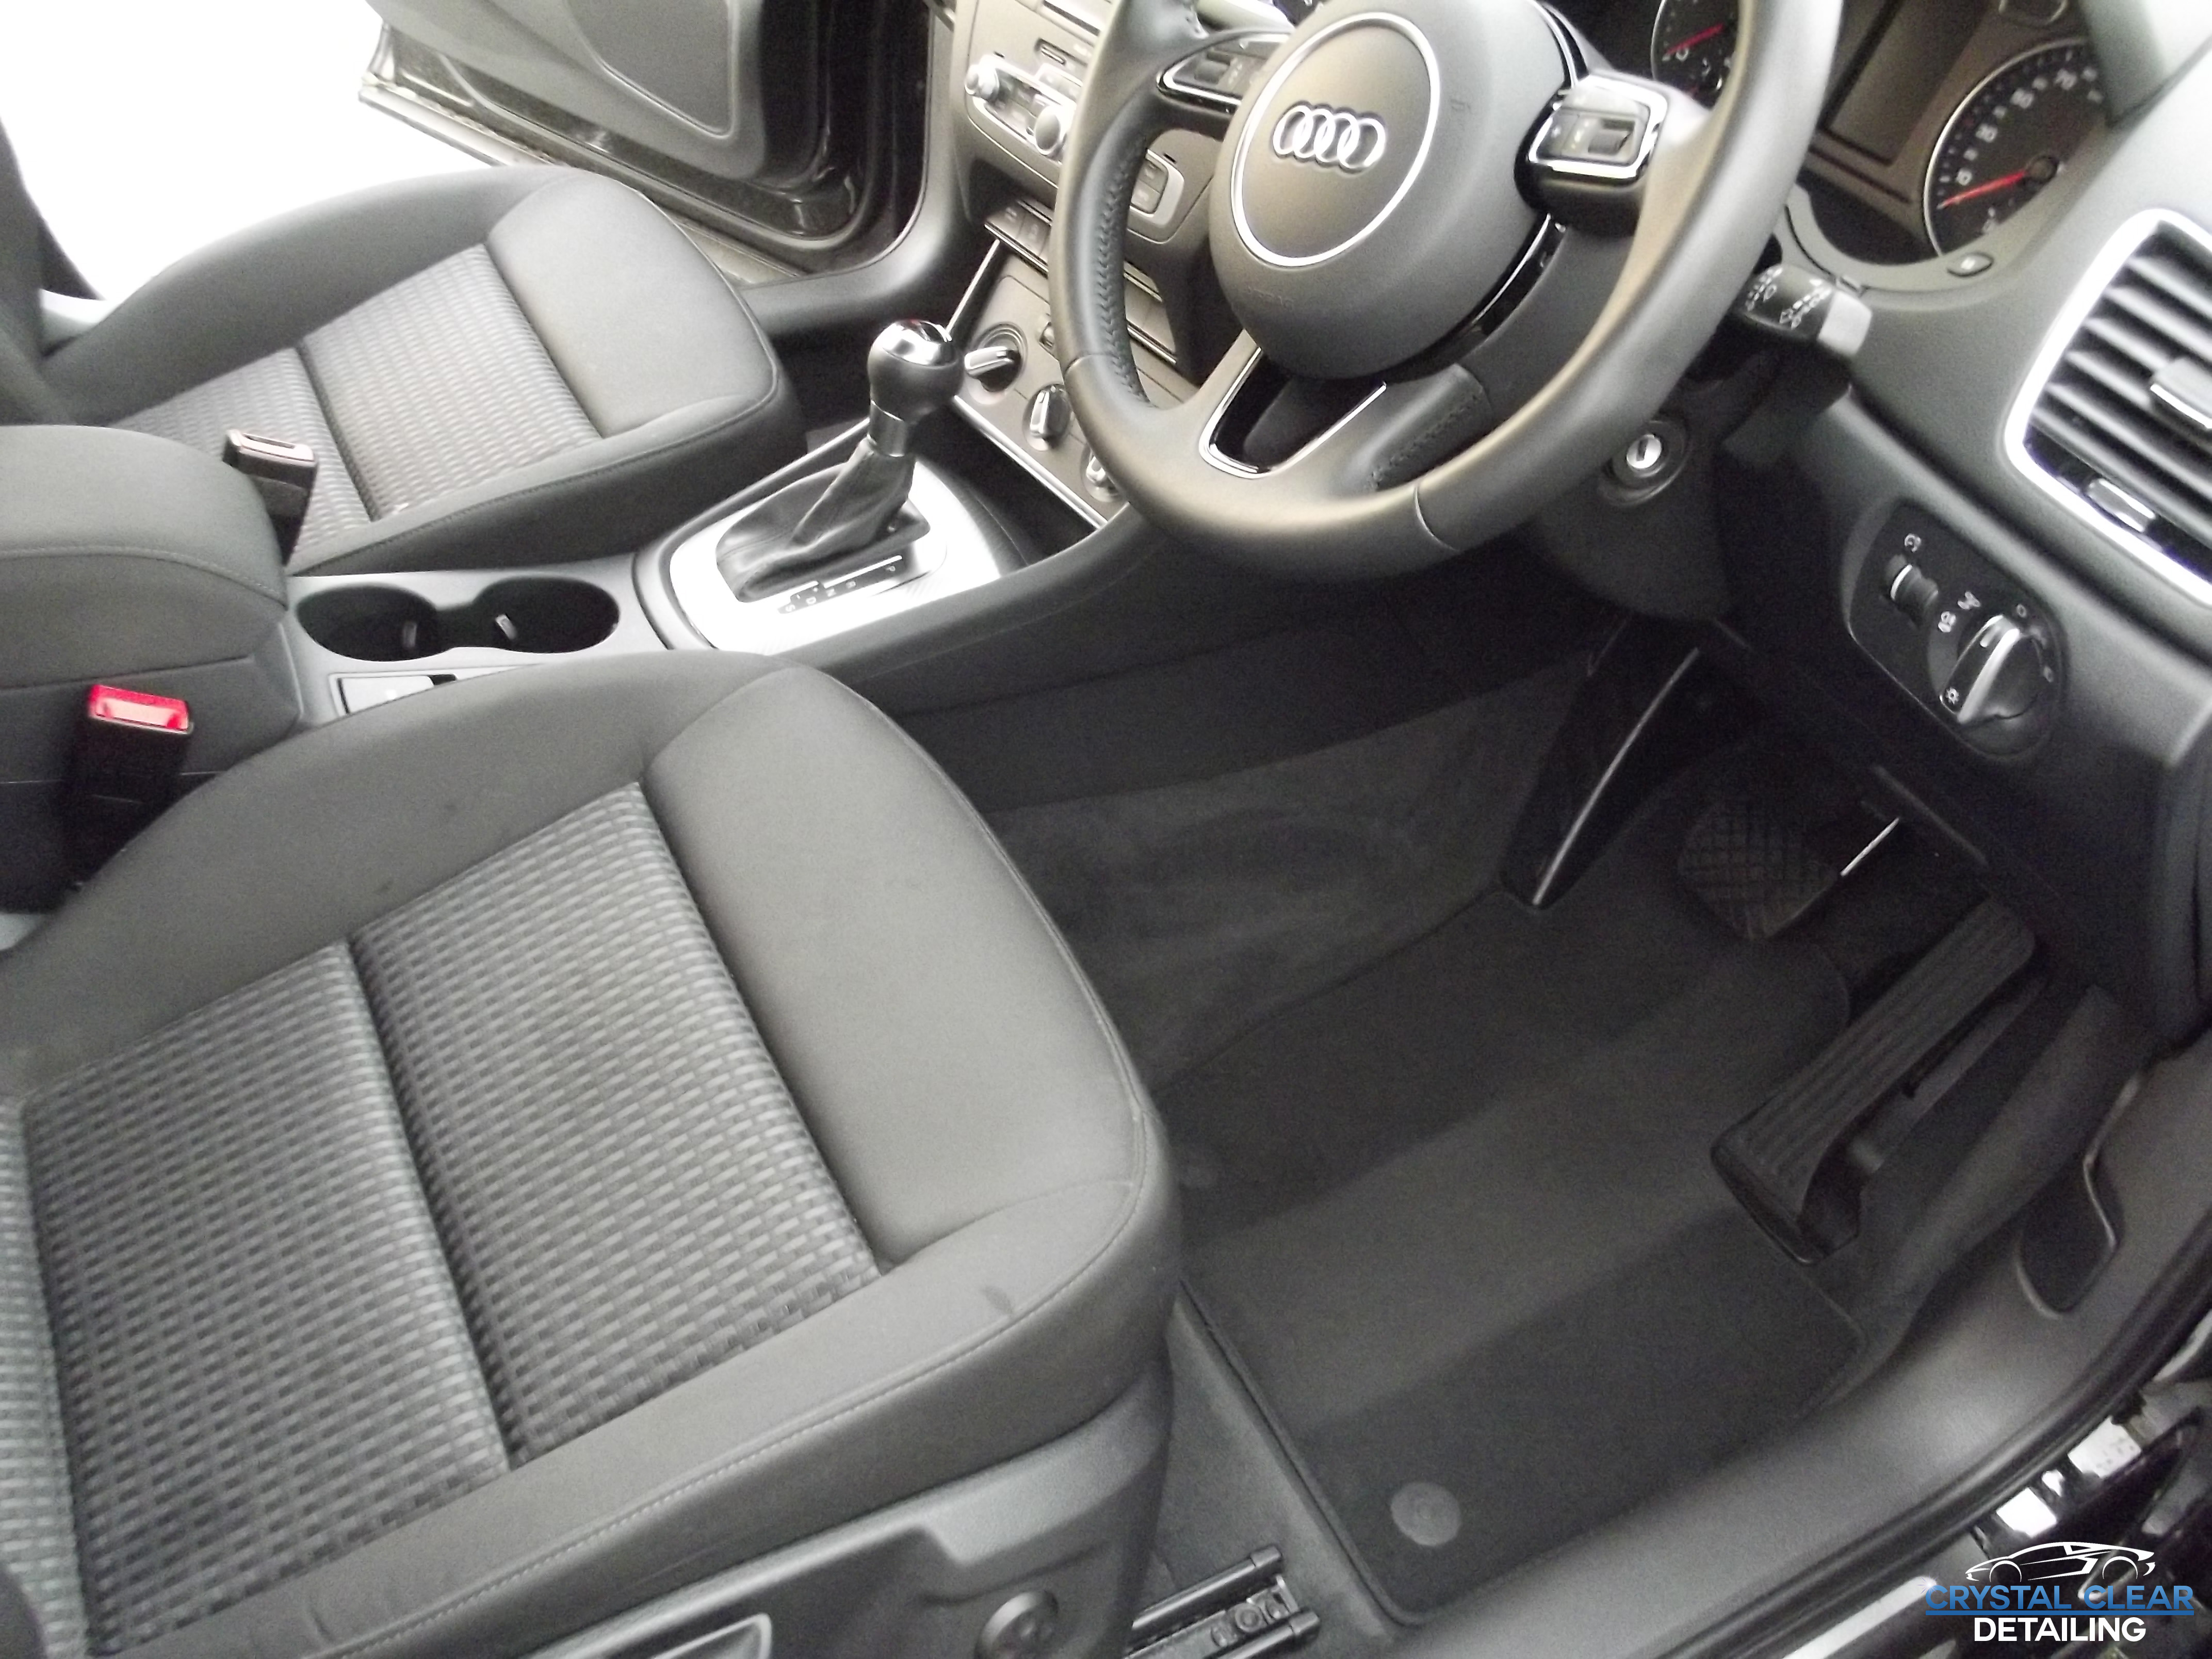 professional car detailing services we offer to our customers in mullingar county westmeath and. Black Bedroom Furniture Sets. Home Design Ideas